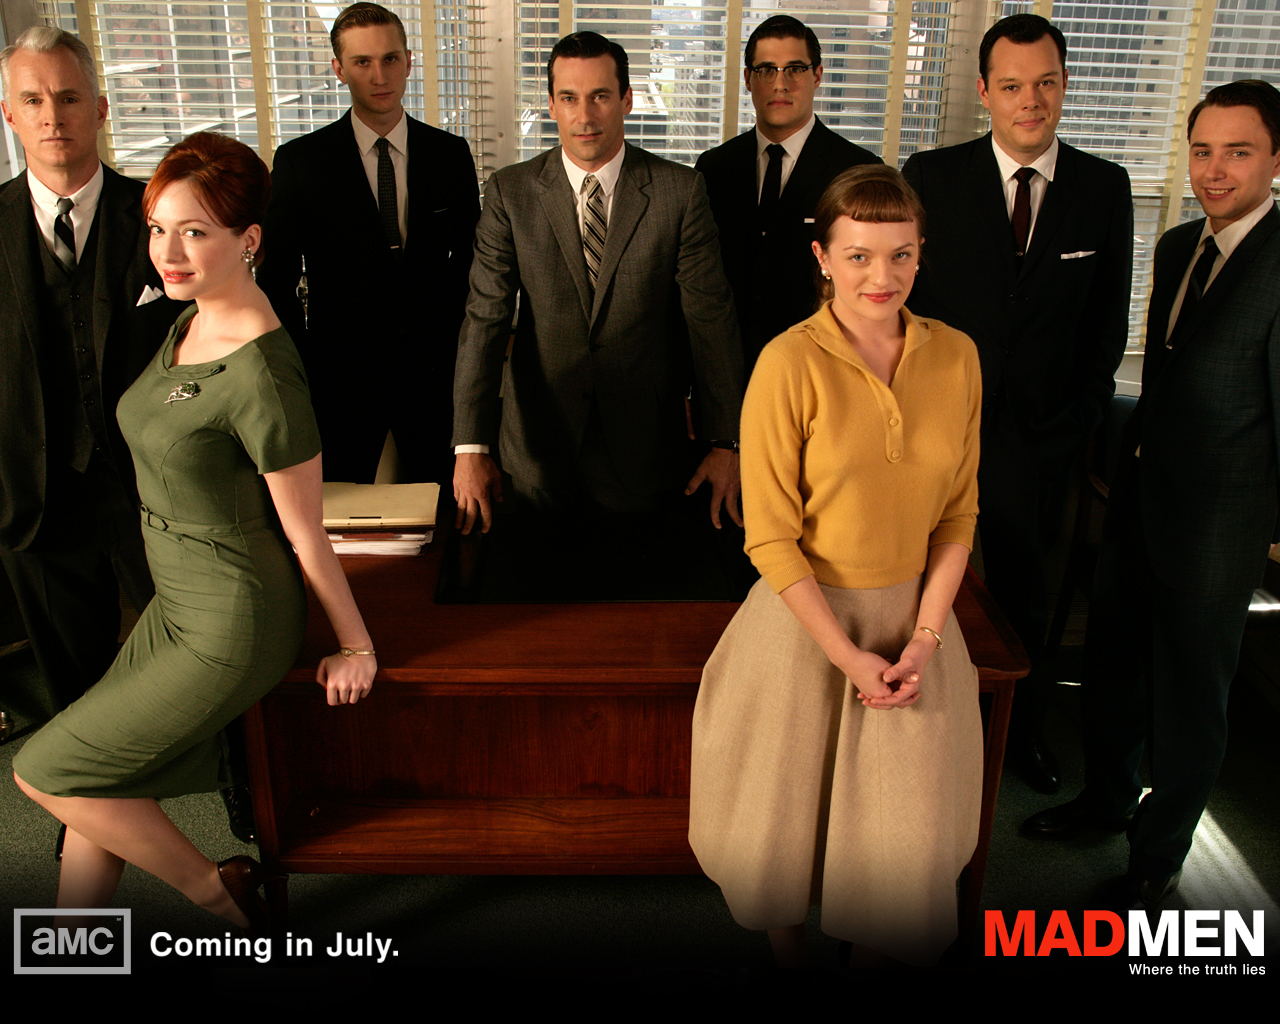 http://3.bp.blogspot.com/-5j7Sz-Z_Rbg/Tl62ehcF--I/AAAAAAAABE4/EM-N98f3Wow/s1600/Christina_Hendricks_in_Mad_Men_TV_Series_Wallpaper_3_1280.jpg